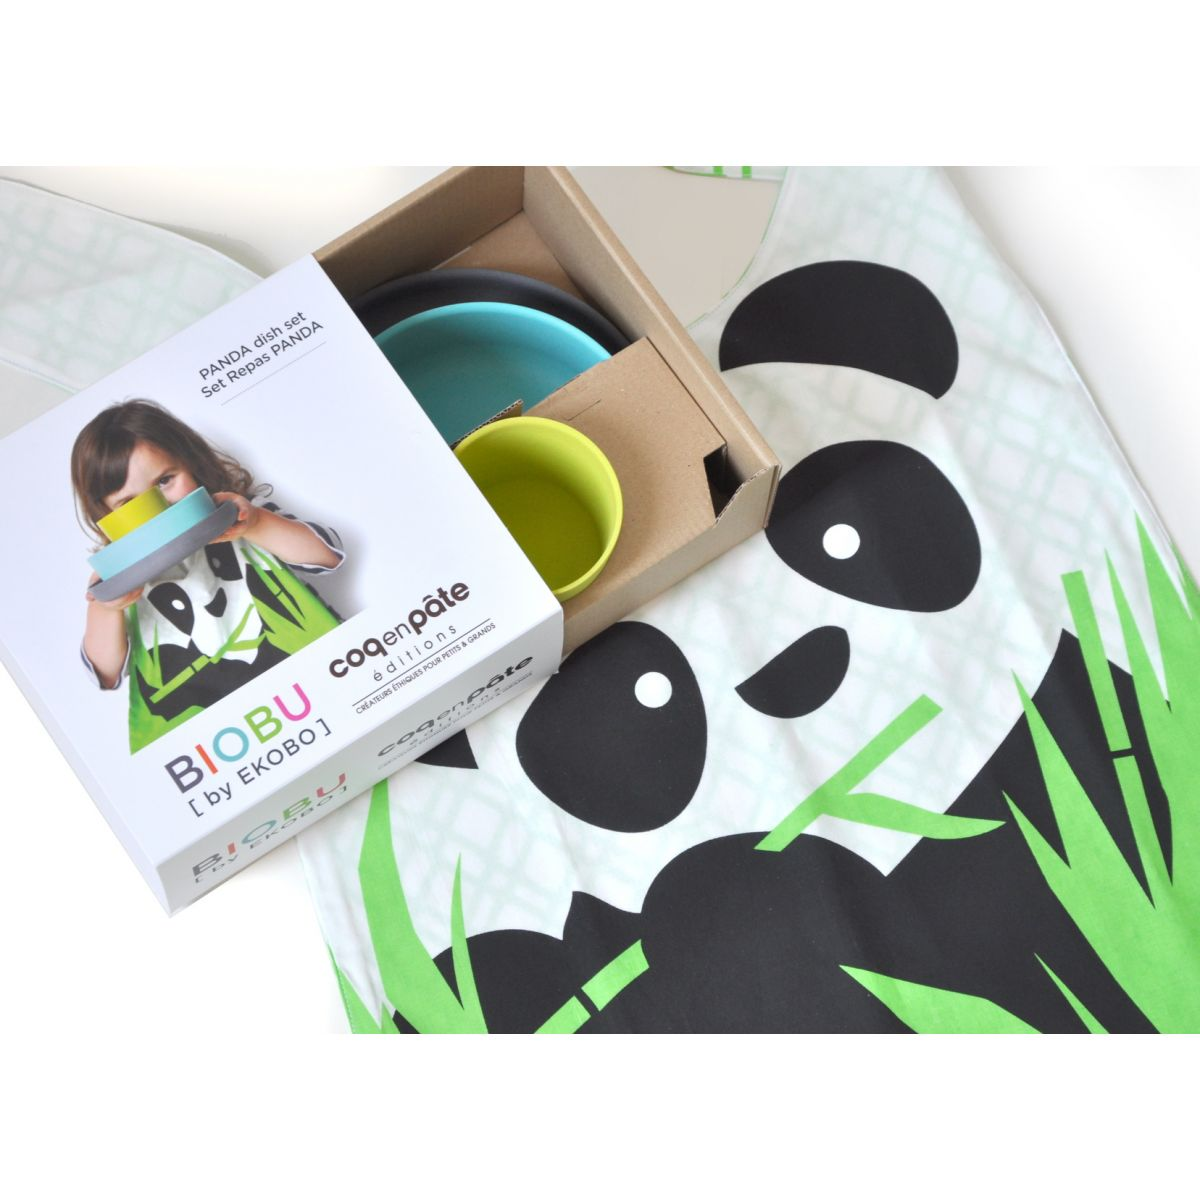 set de vaisselle panda en fibre de bambou biod gradable. Black Bedroom Furniture Sets. Home Design Ideas